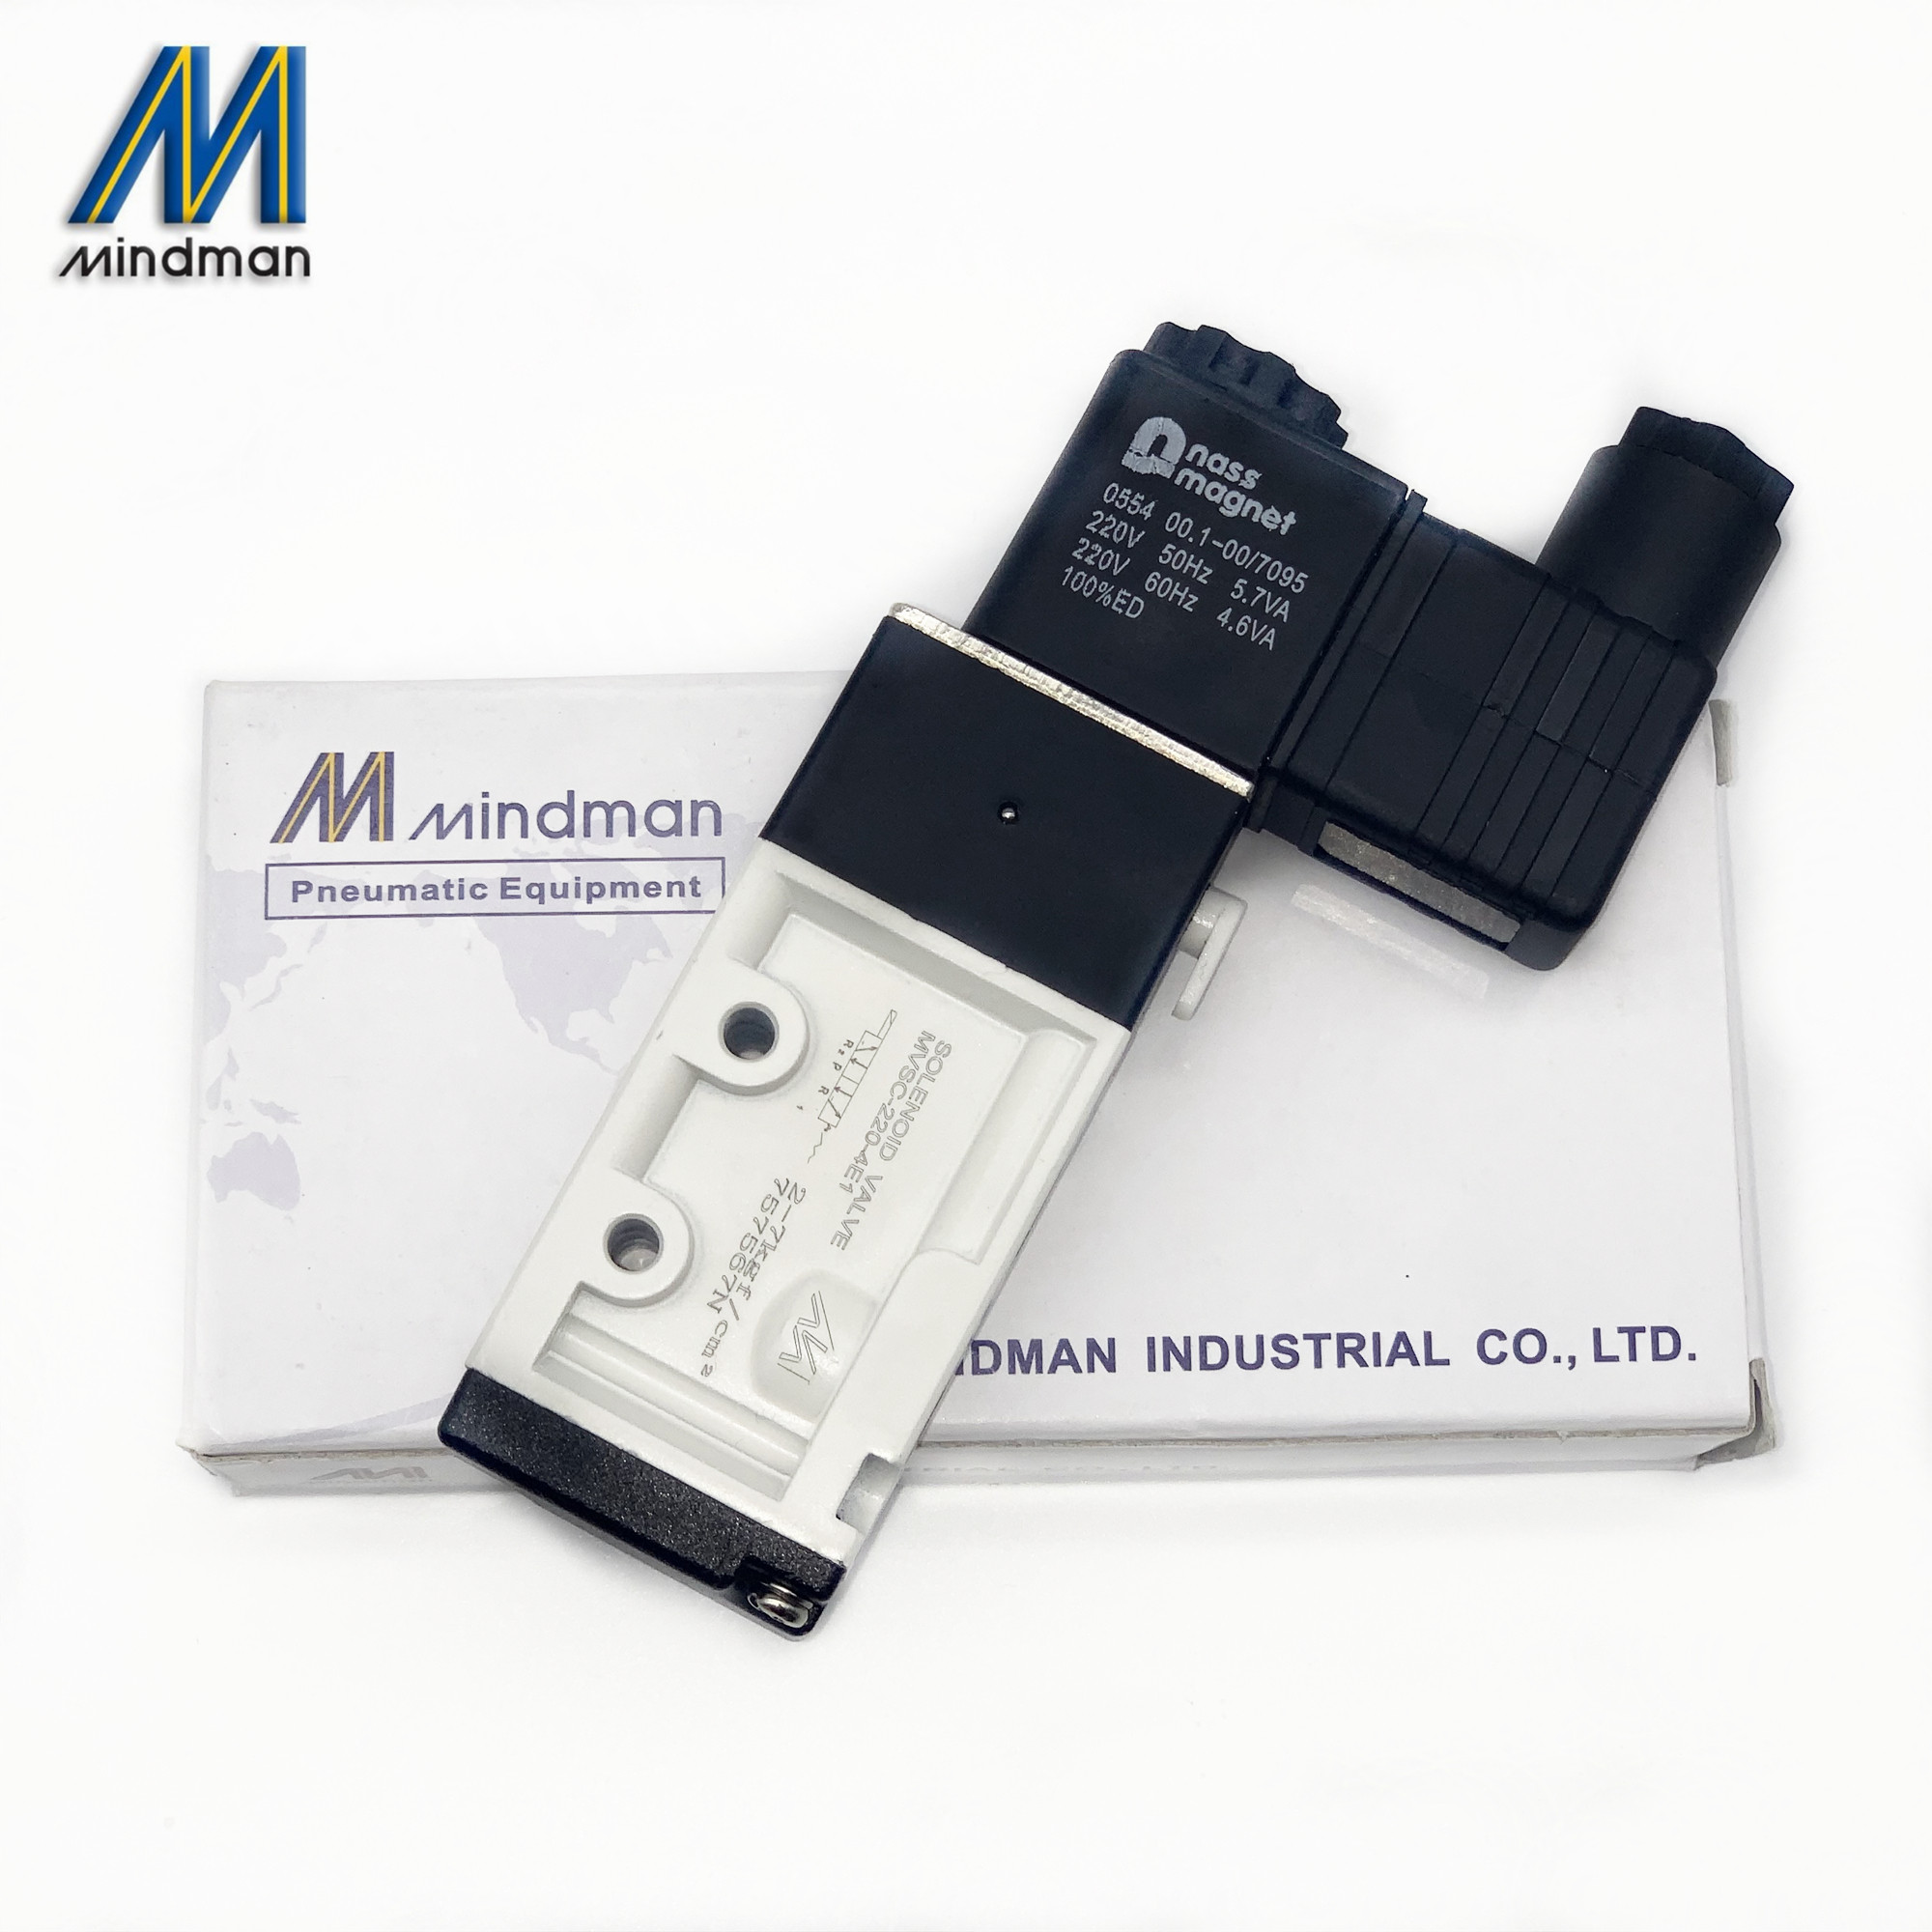 1pcs New Mindman MVSD-180-4E1